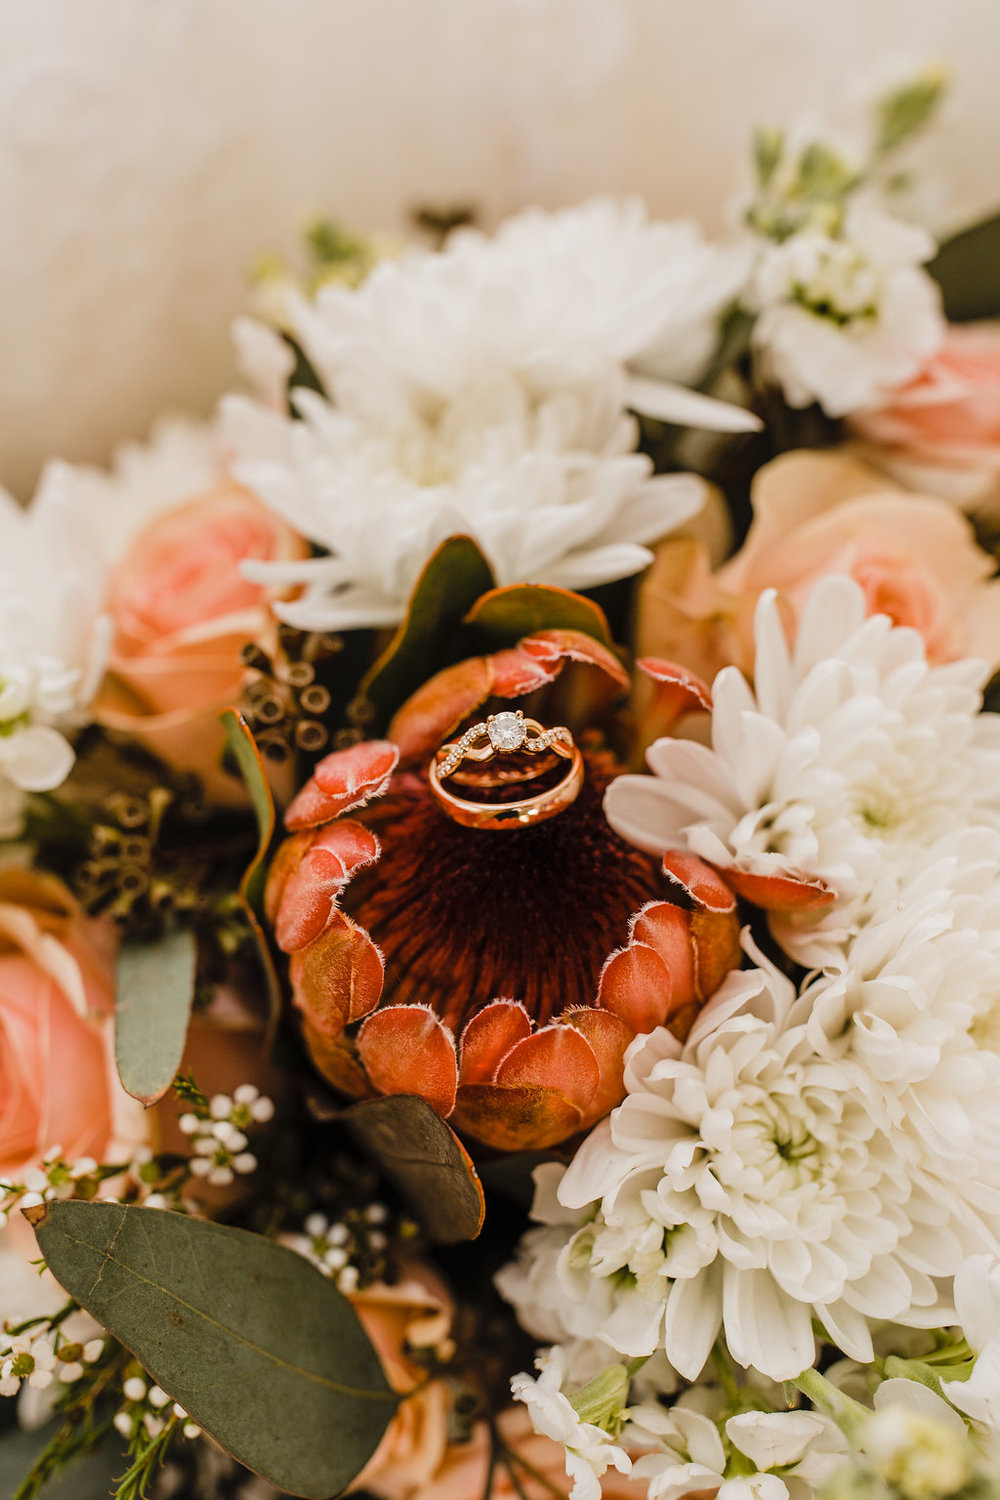 bouquet ring shot wedding day detail photography orange flowers rose gold